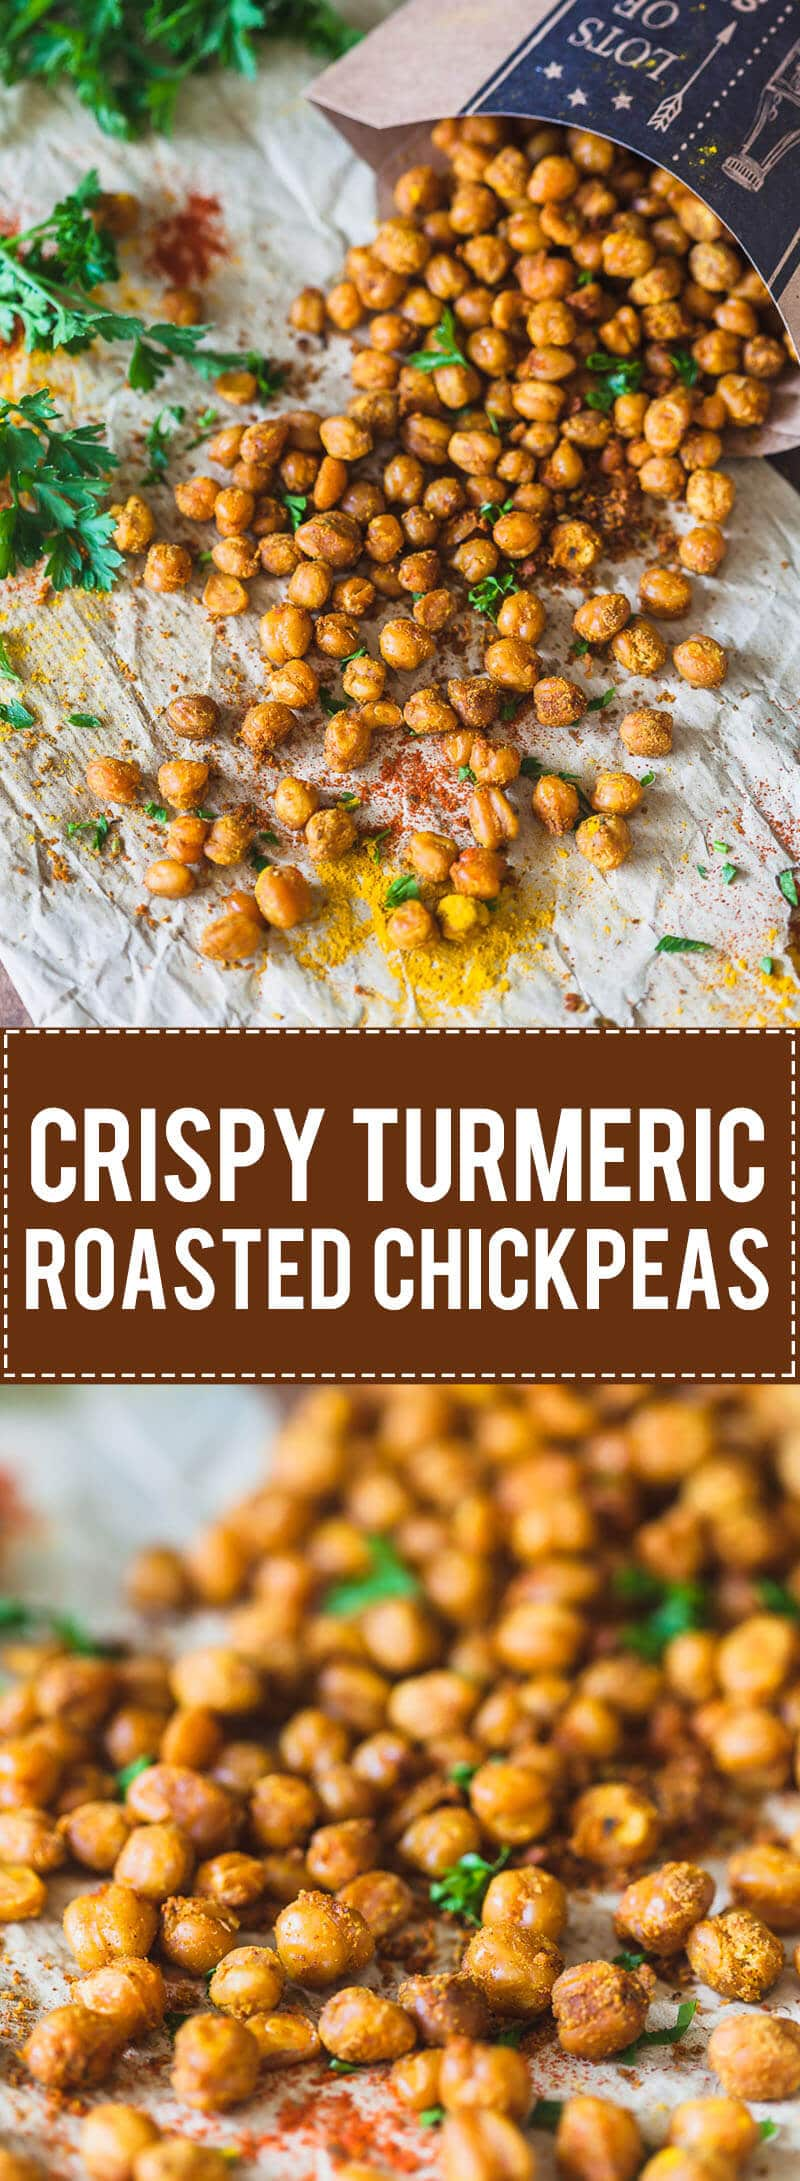 Crispy Turmeric Roasted Chickpeas (Garbanzo Beans) are a great Vegan & Gluten-Free healthy snack or delicious salad topping.